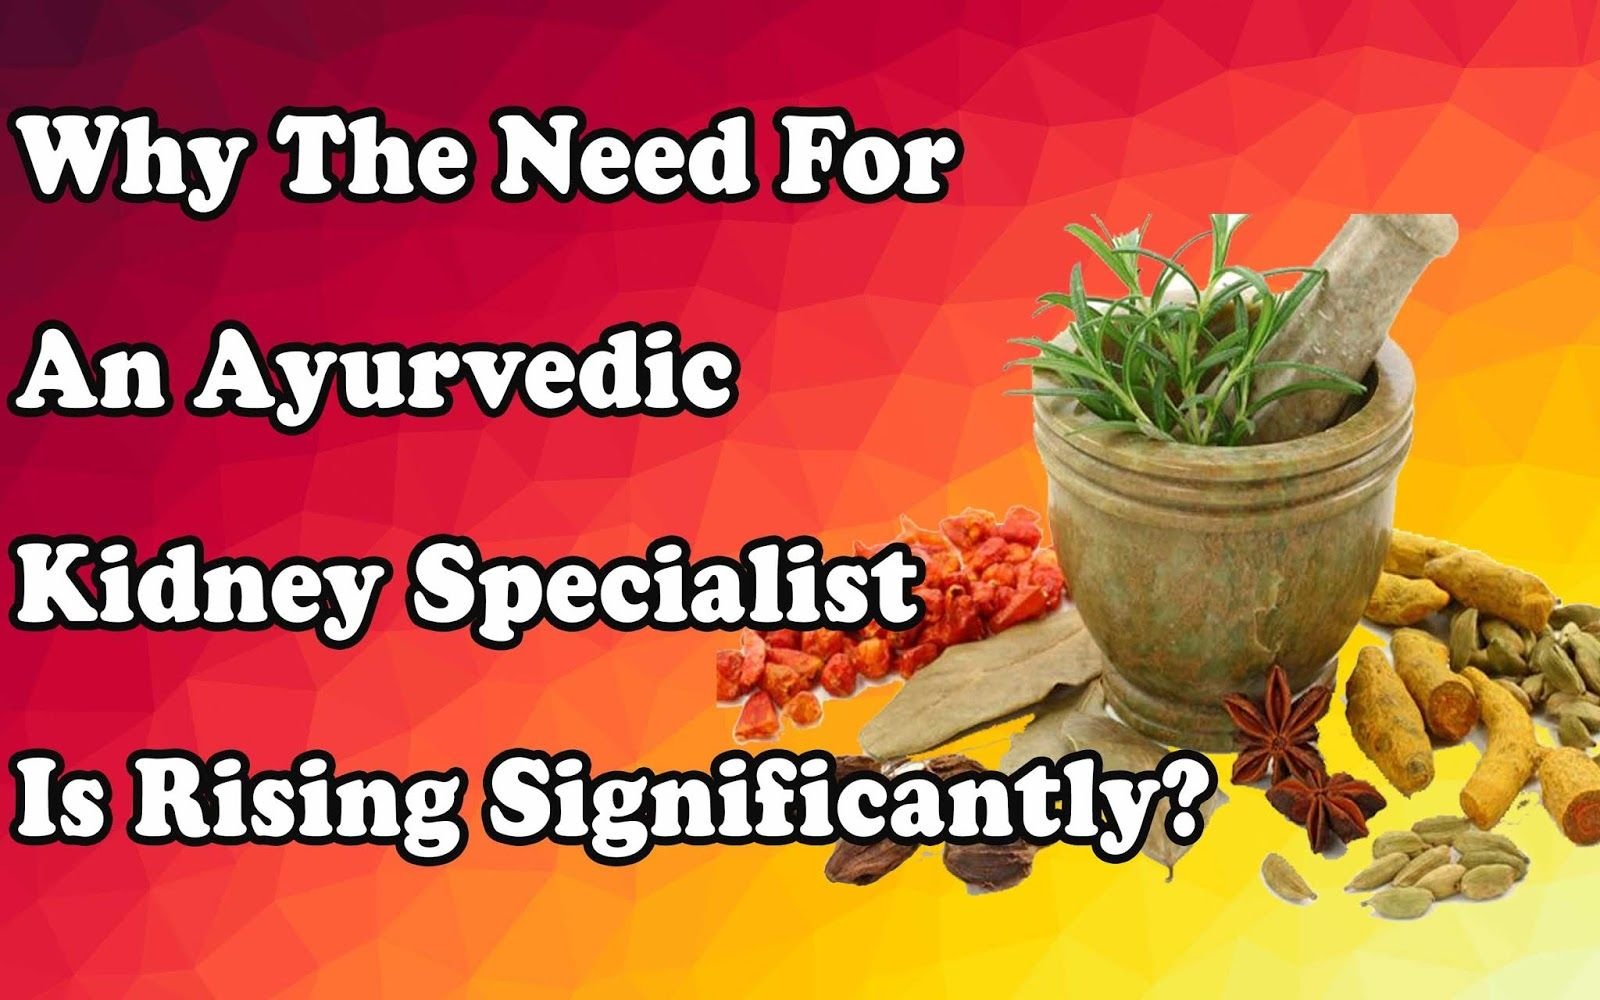 Why the Need For an Ayurvedic Kidney Specialist is Rising Significantly?